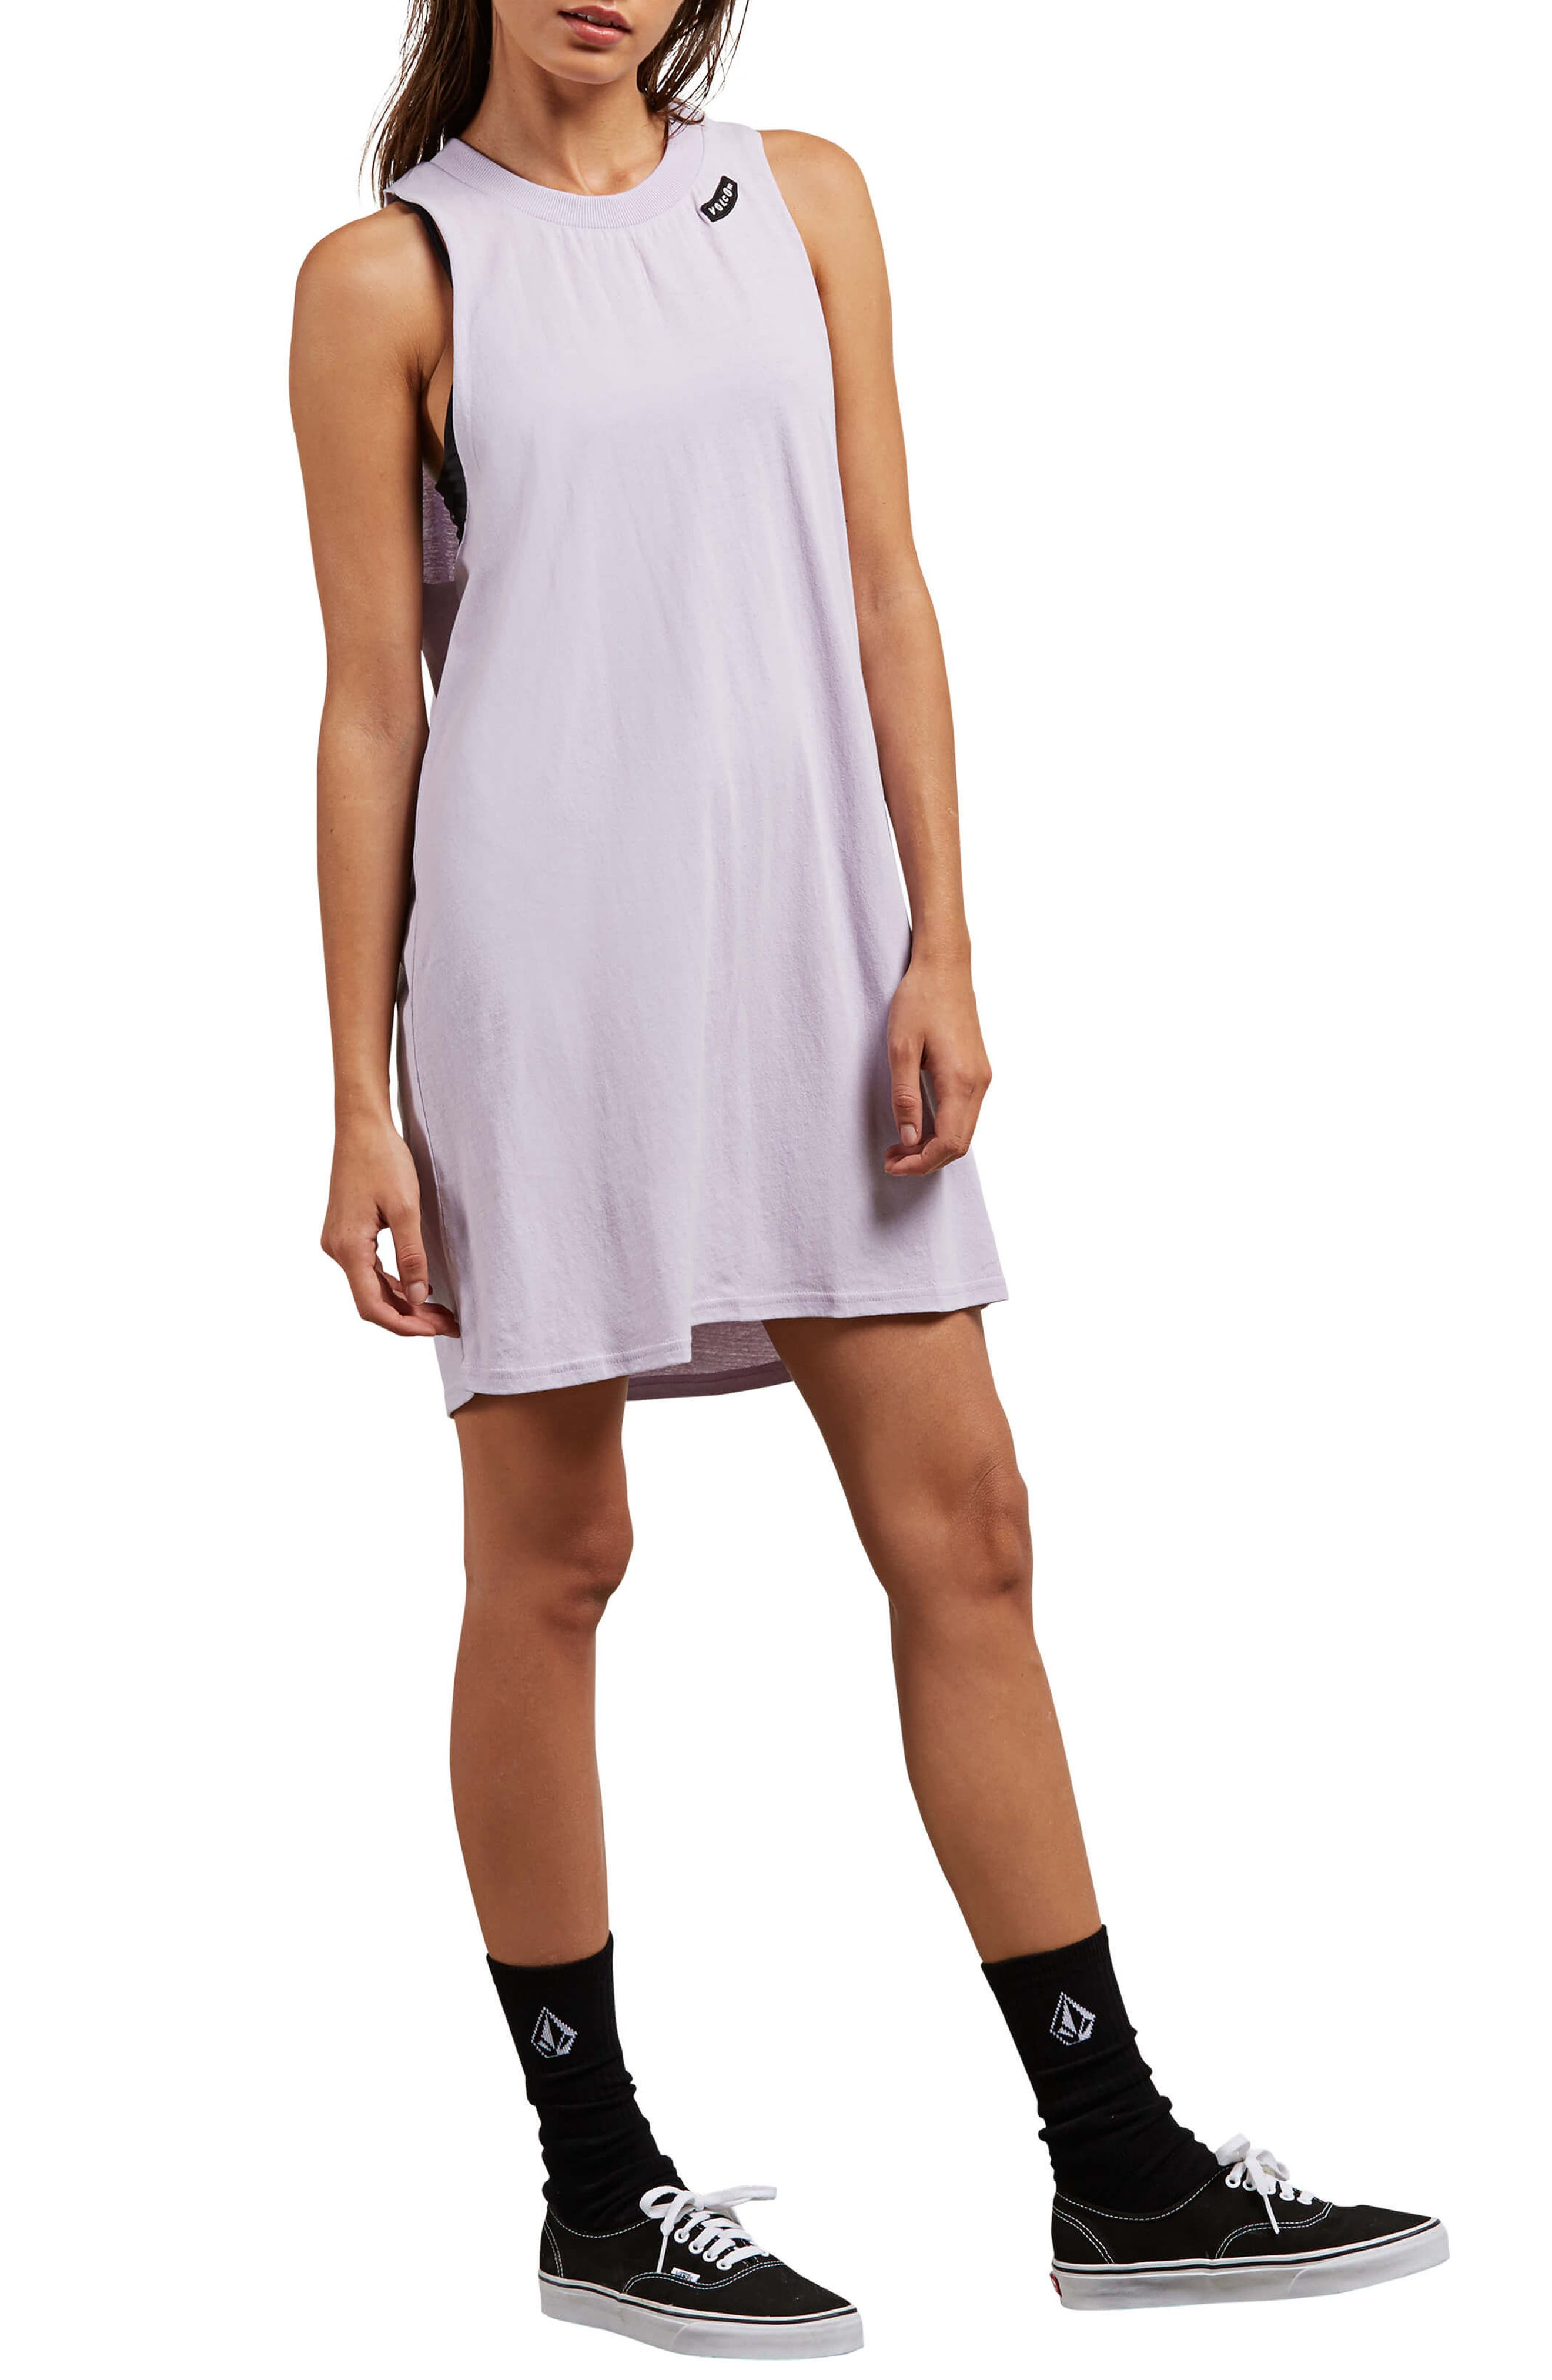 Day by Day Tank Dress,                             Main thumbnail 1, color,                             Lavender